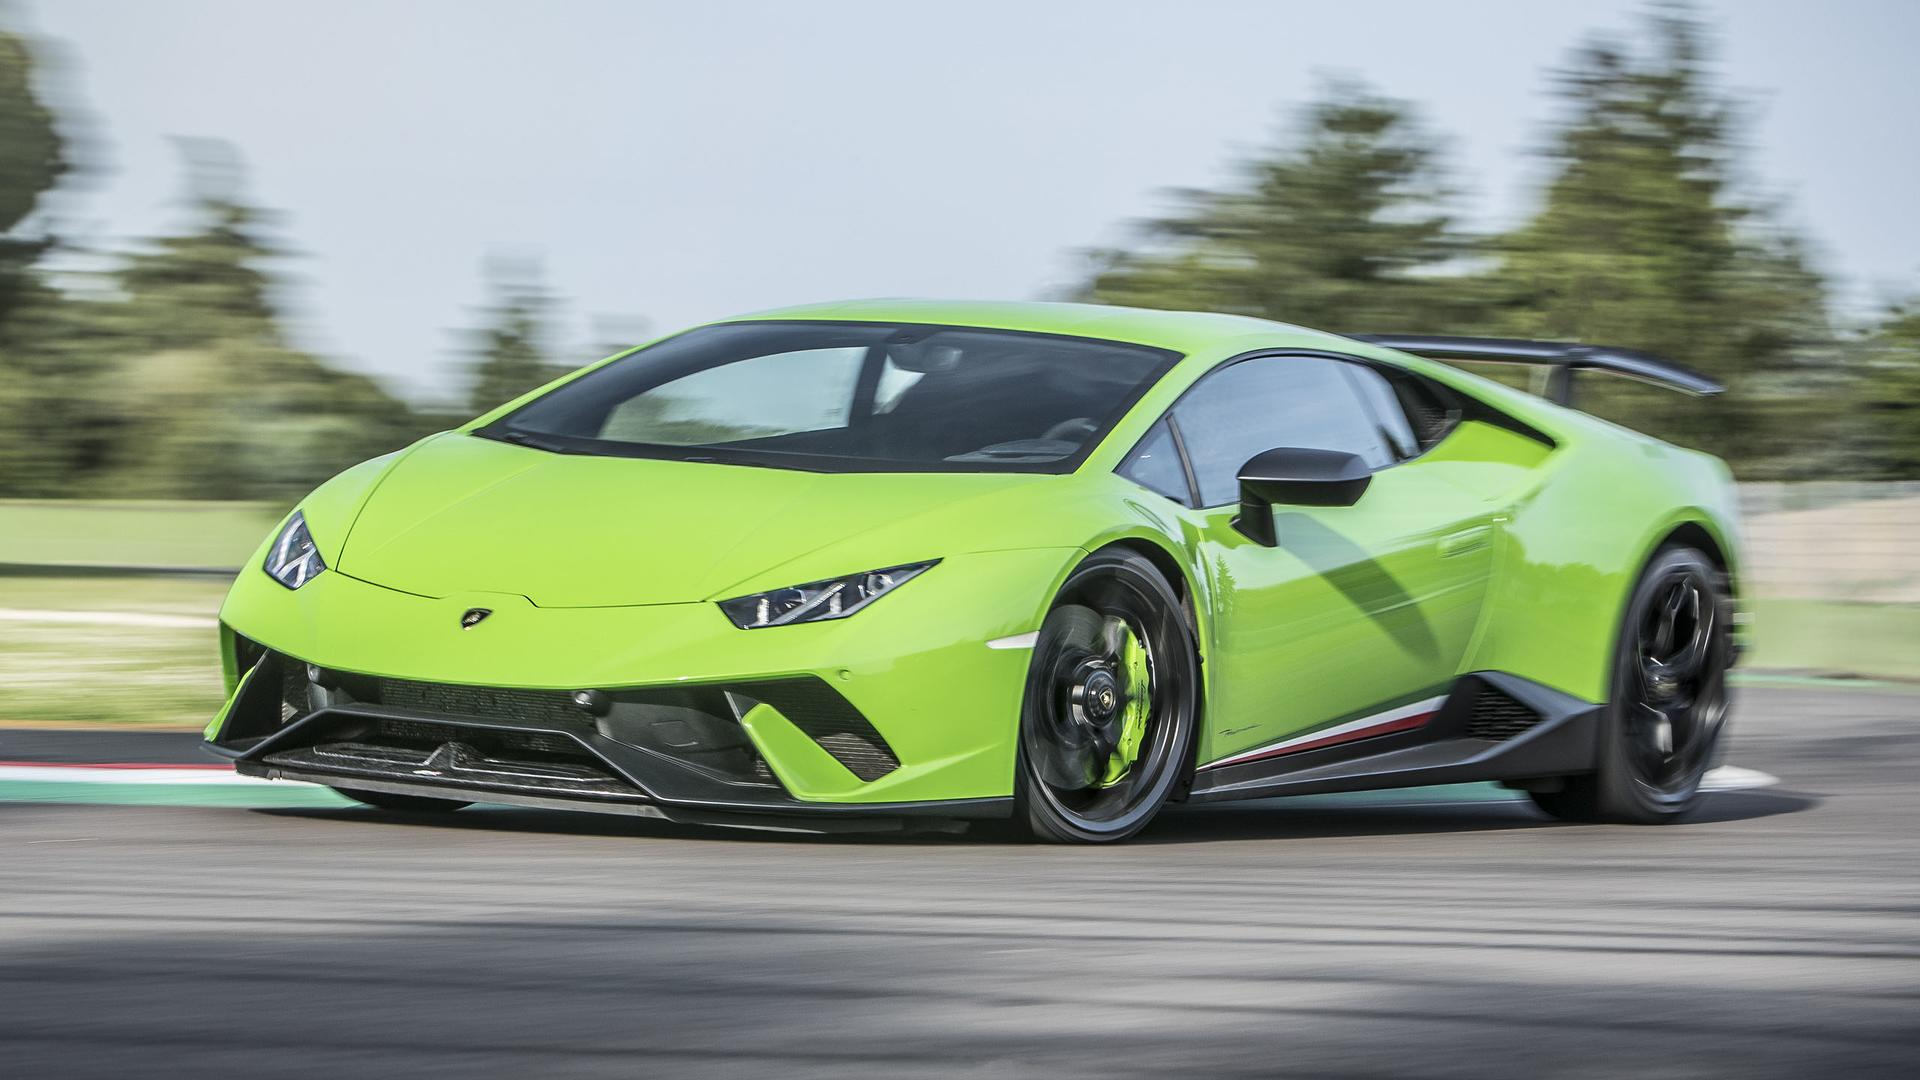 Lamborghini Price 2017 >> 2017 Lamborghini Huracán Performante First Drive: Record-Breaking Ability